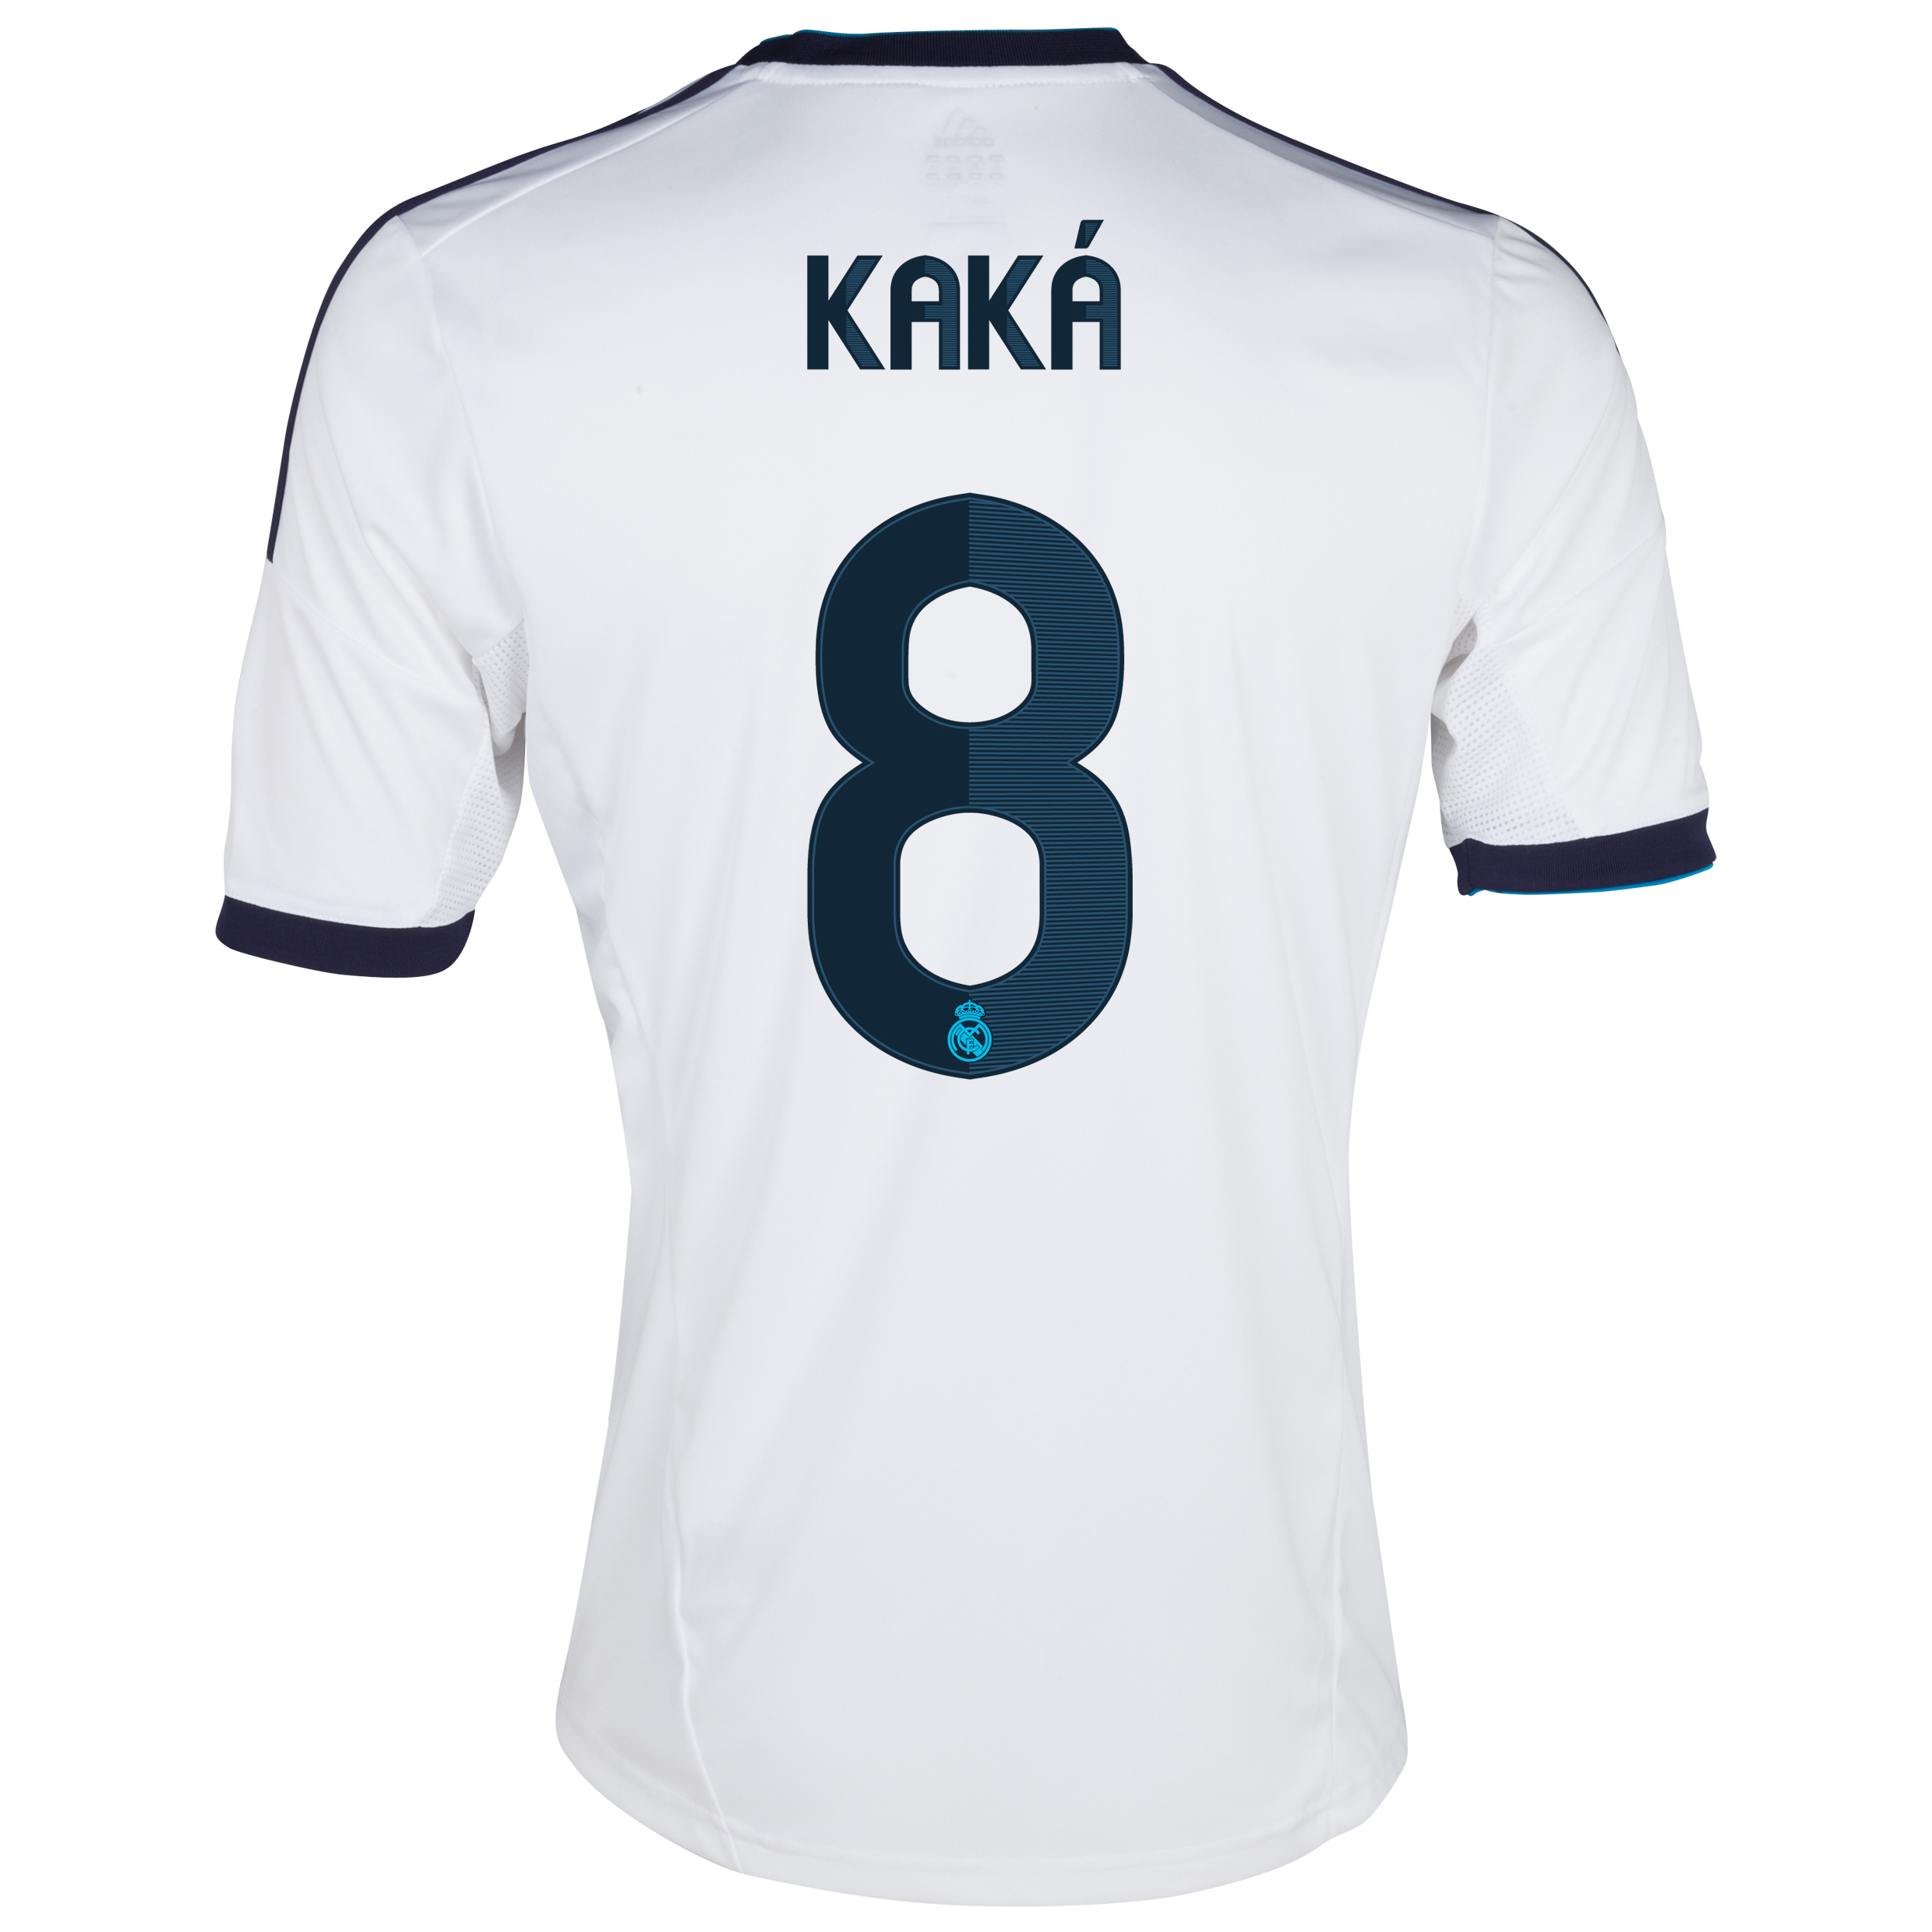 Camiseta 1 equipacin del Real Madrid 2012/13 con Kak 8